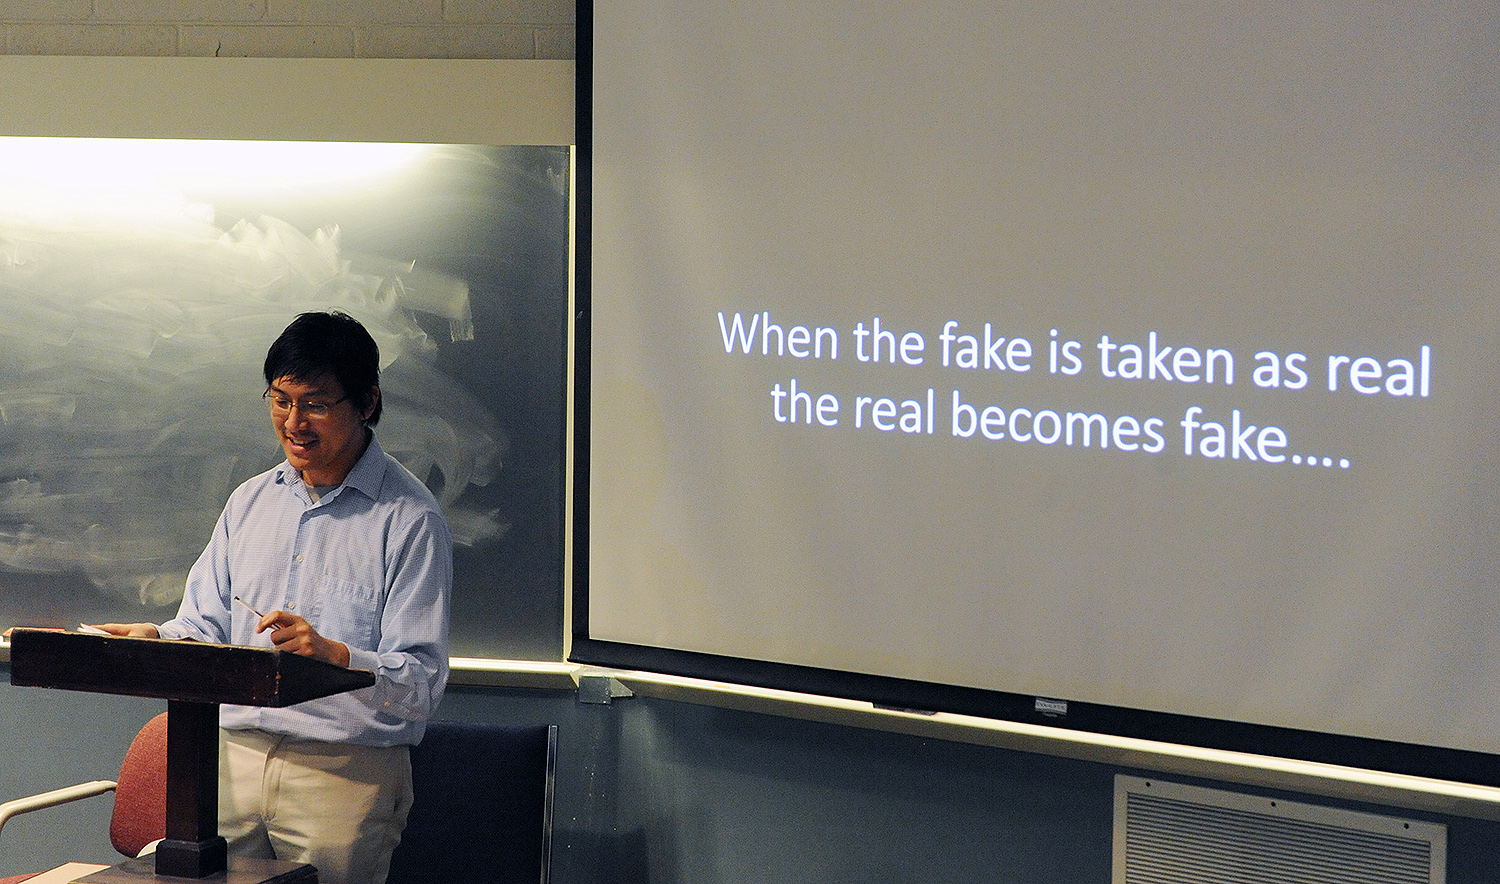 Tan spoke about how the state controlled the flow of information in imperial and modern China. The distinction between real and fake news rendered meaningless.